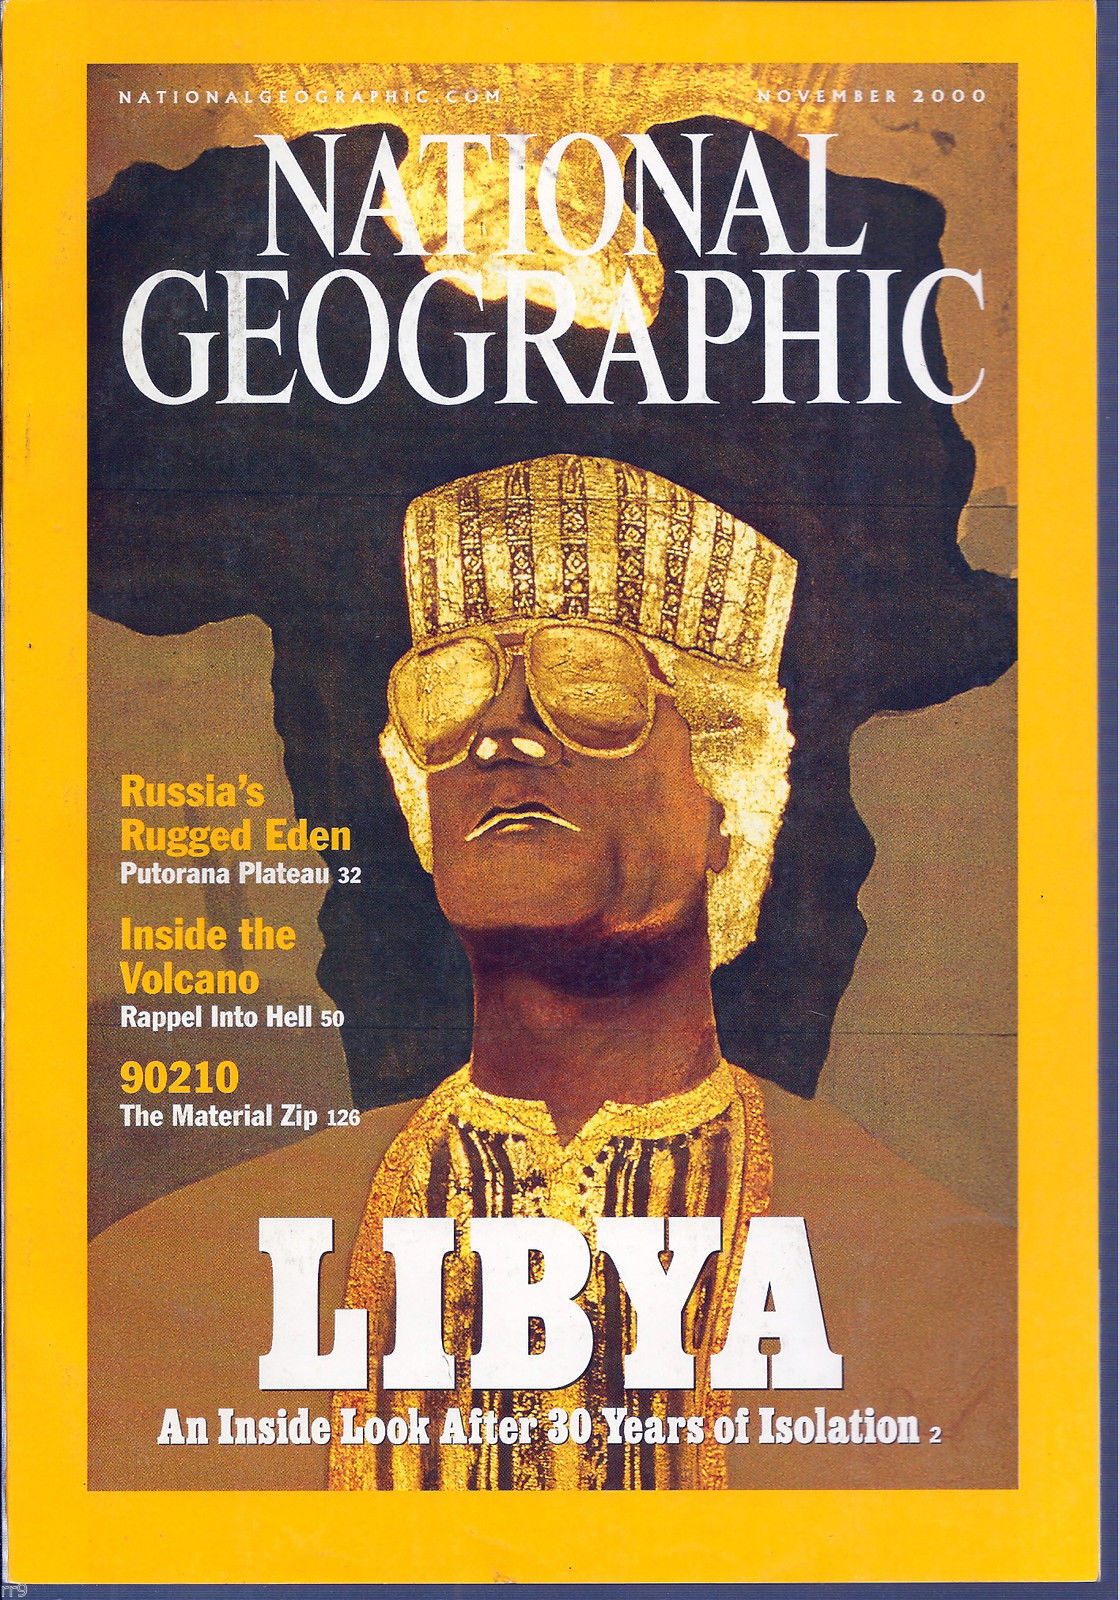 Primary image for National Geographic November 2000 Libya After 30 Years Isolation, 90210,Volcano'